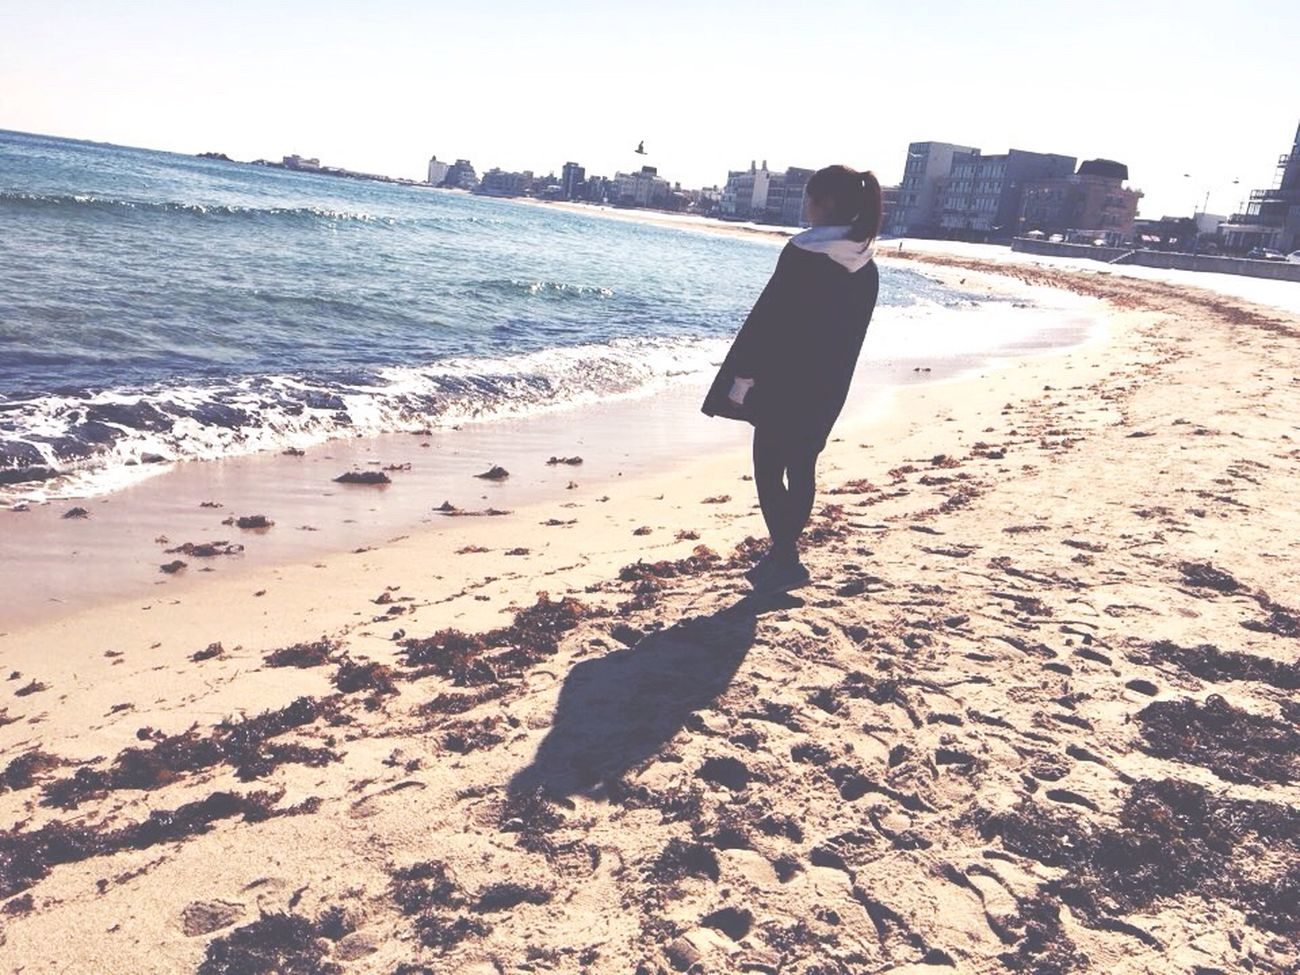 Sea View Alone Time It's Me Trip Photo Winter Sea Sokcho Beach Korea IPhoneography Iphone 5